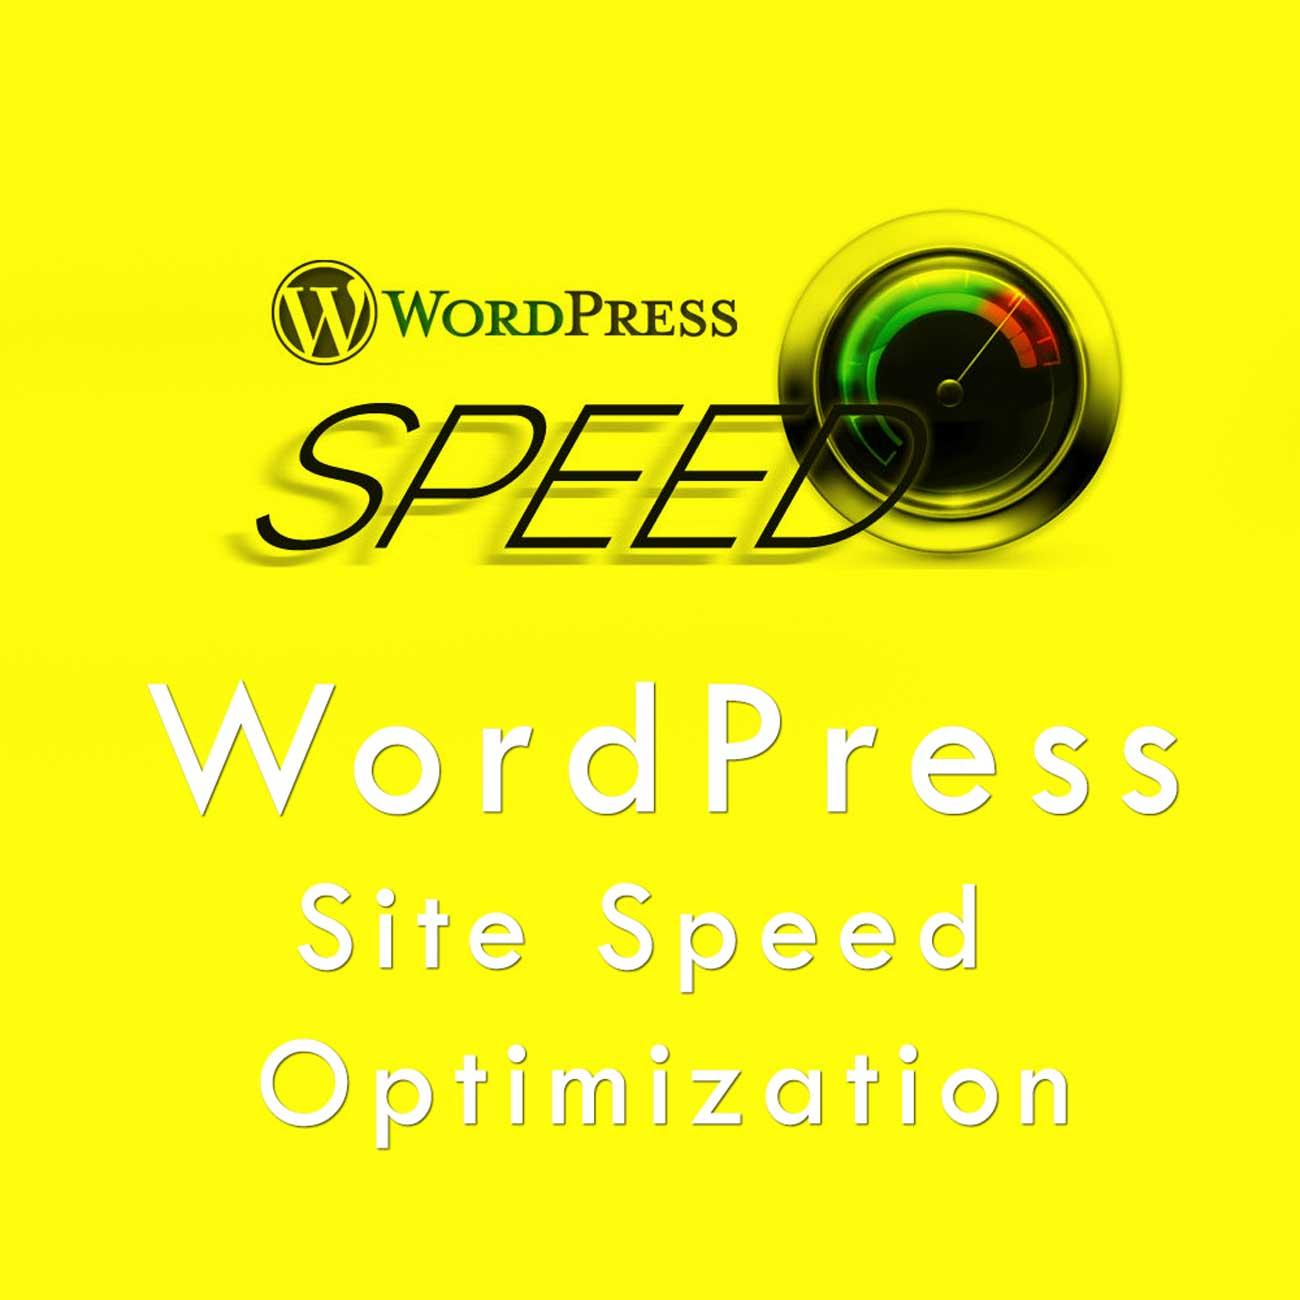 Wordpress Website Page Speed Optimization by lucky512 - 63062